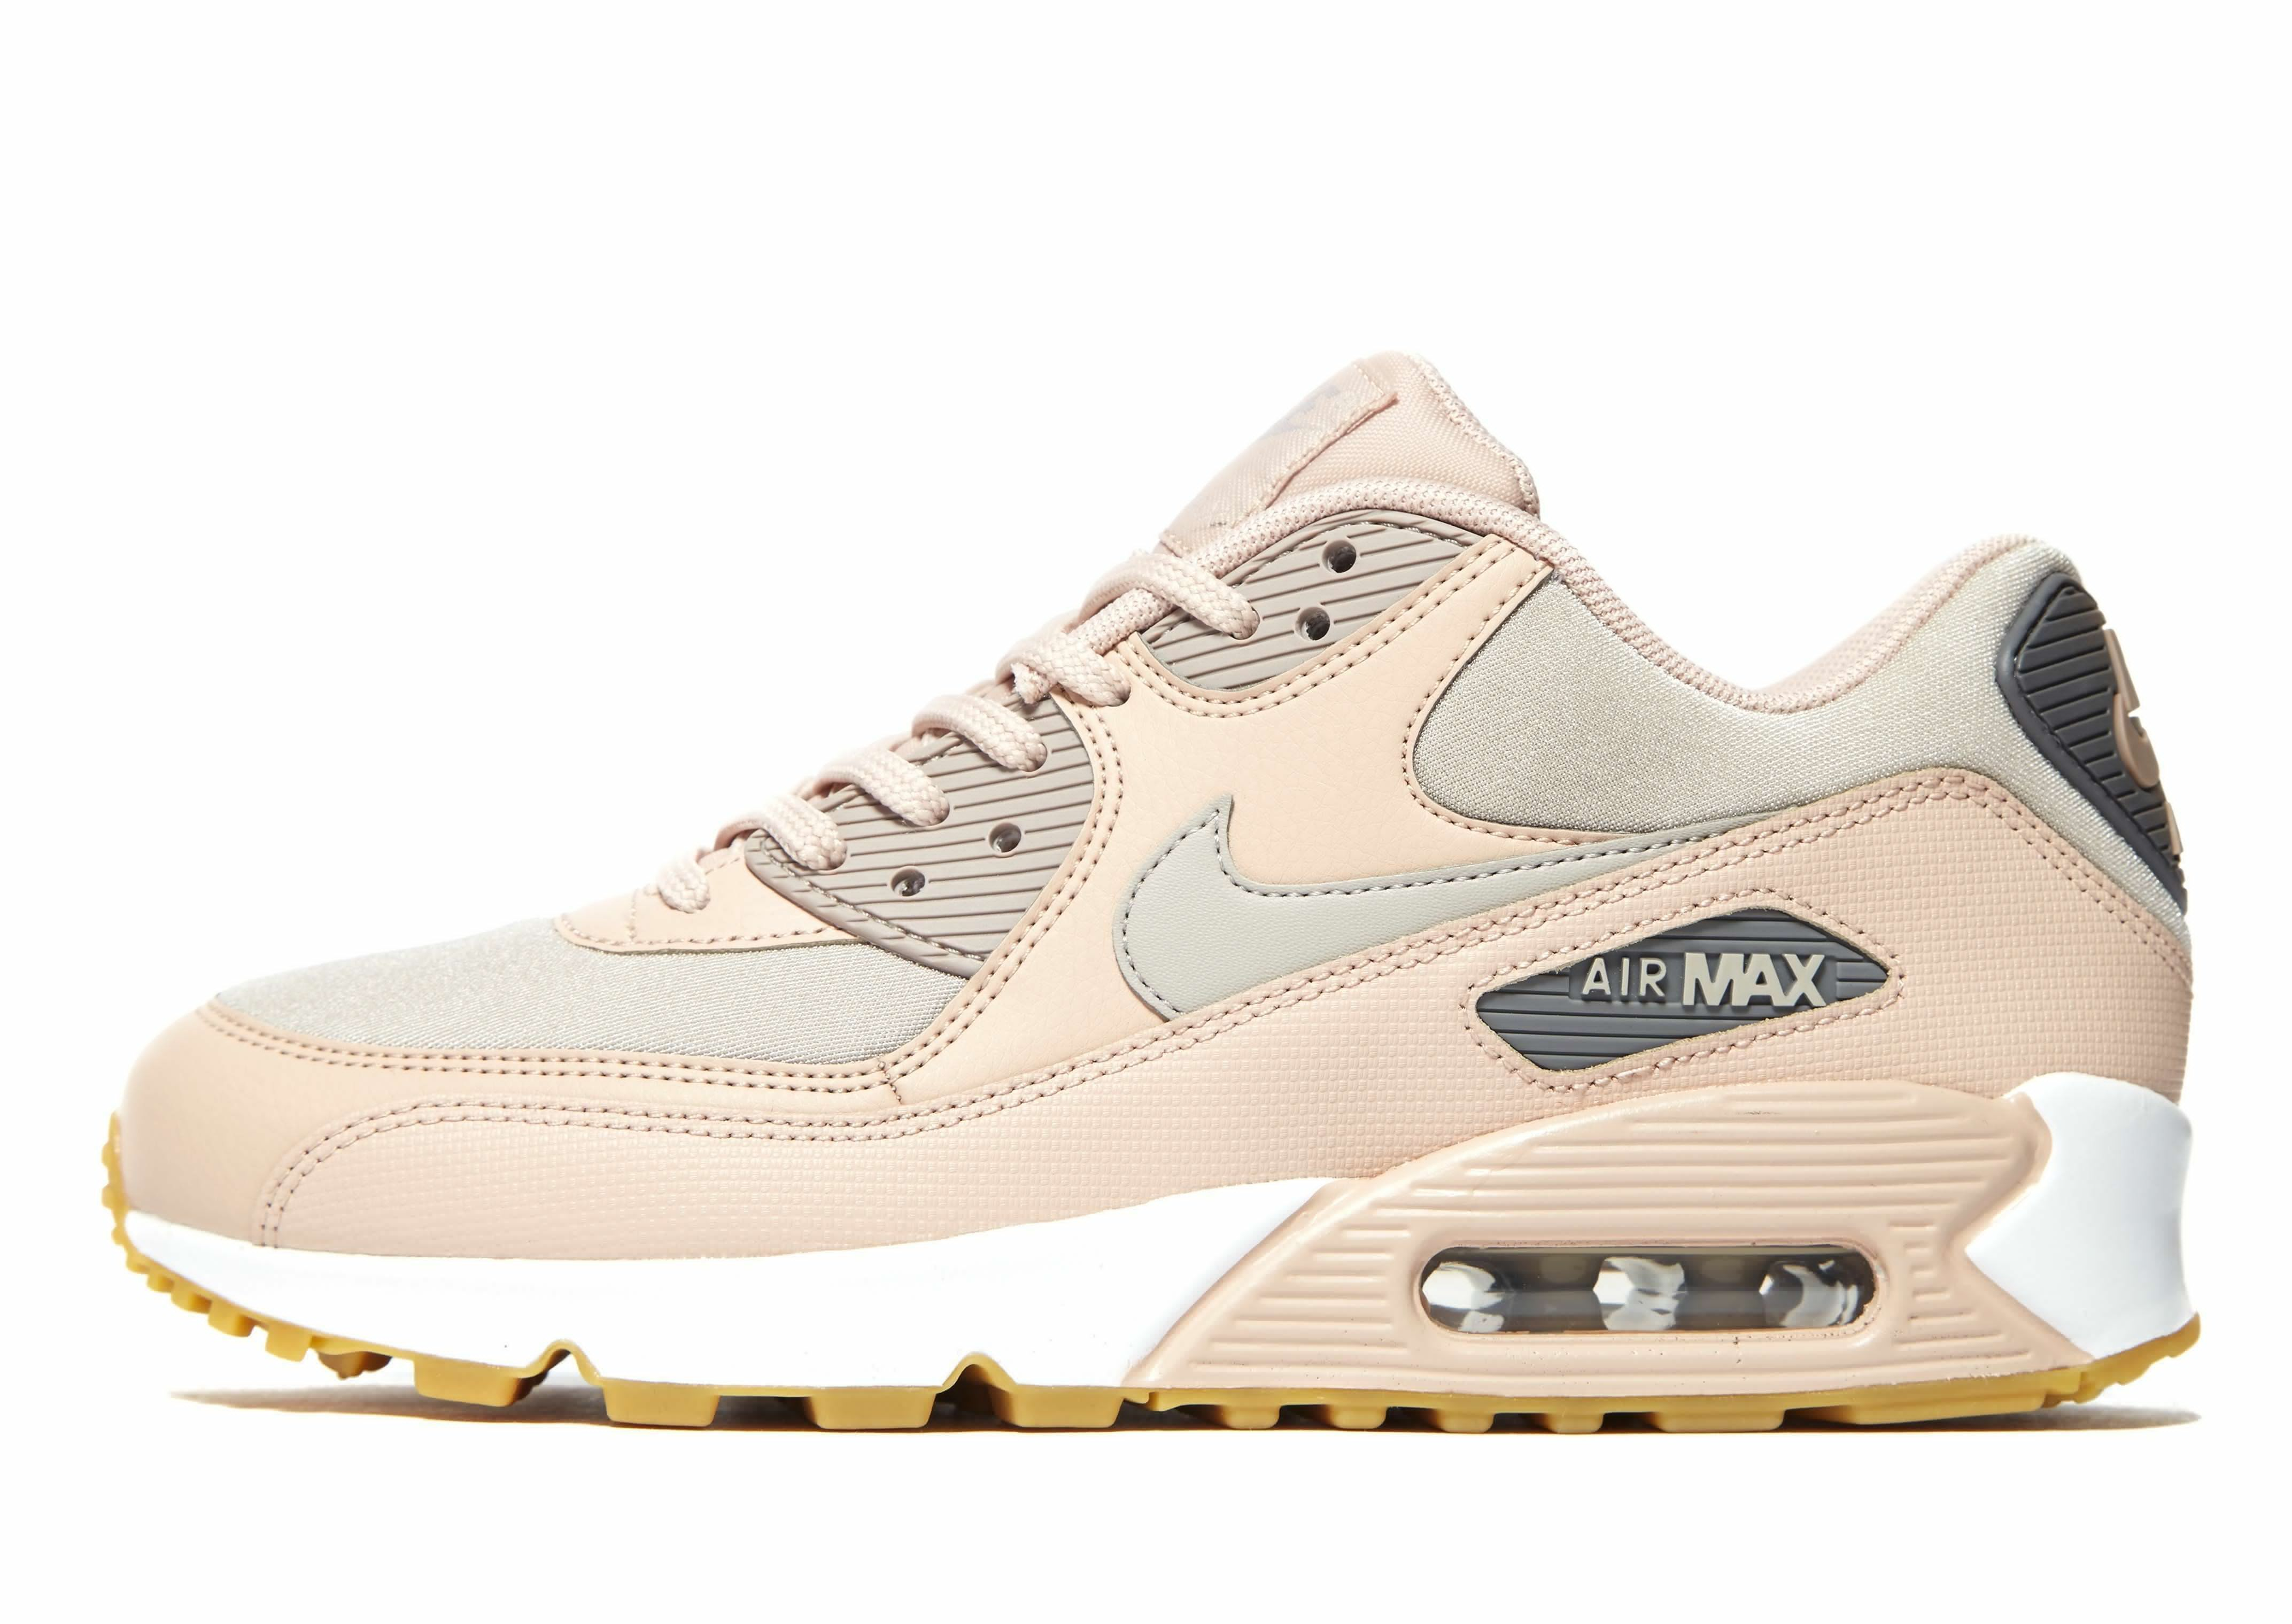 best service 52c61 b6dbd Nike Air Max 90 Womens - Shop online for Nike Air Max 90 Womens with JD  Sports, the UKs leading sports fashion retailer.